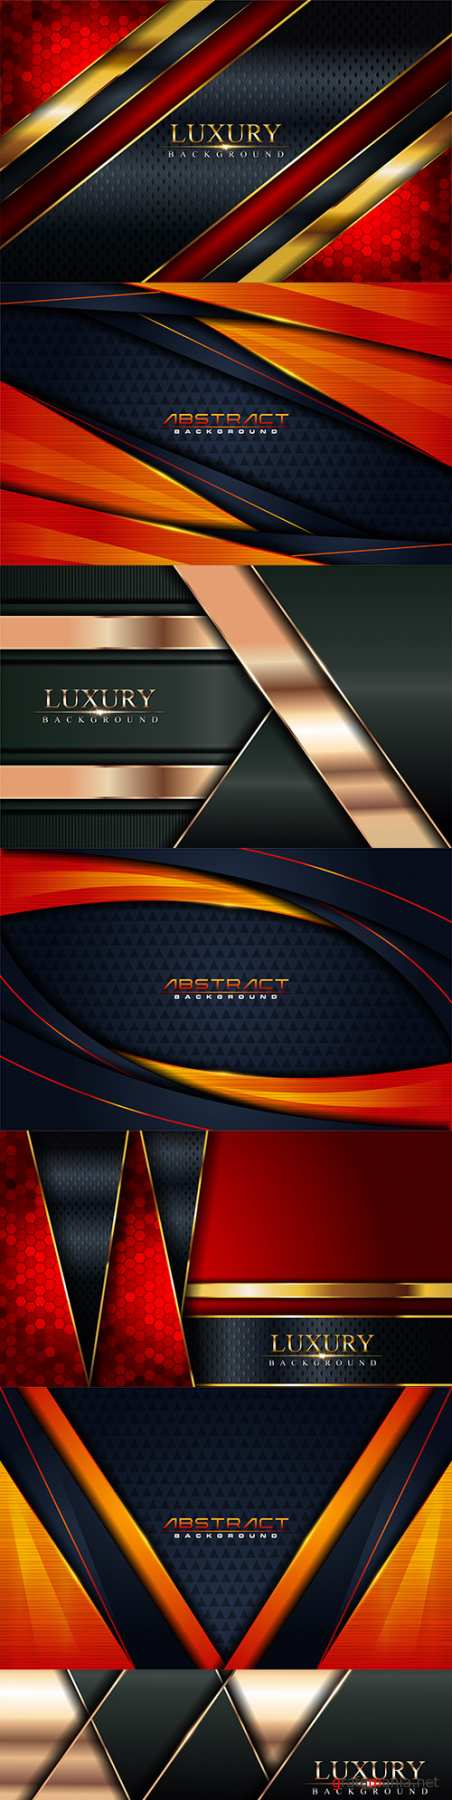 Luxury background and gold design element 22